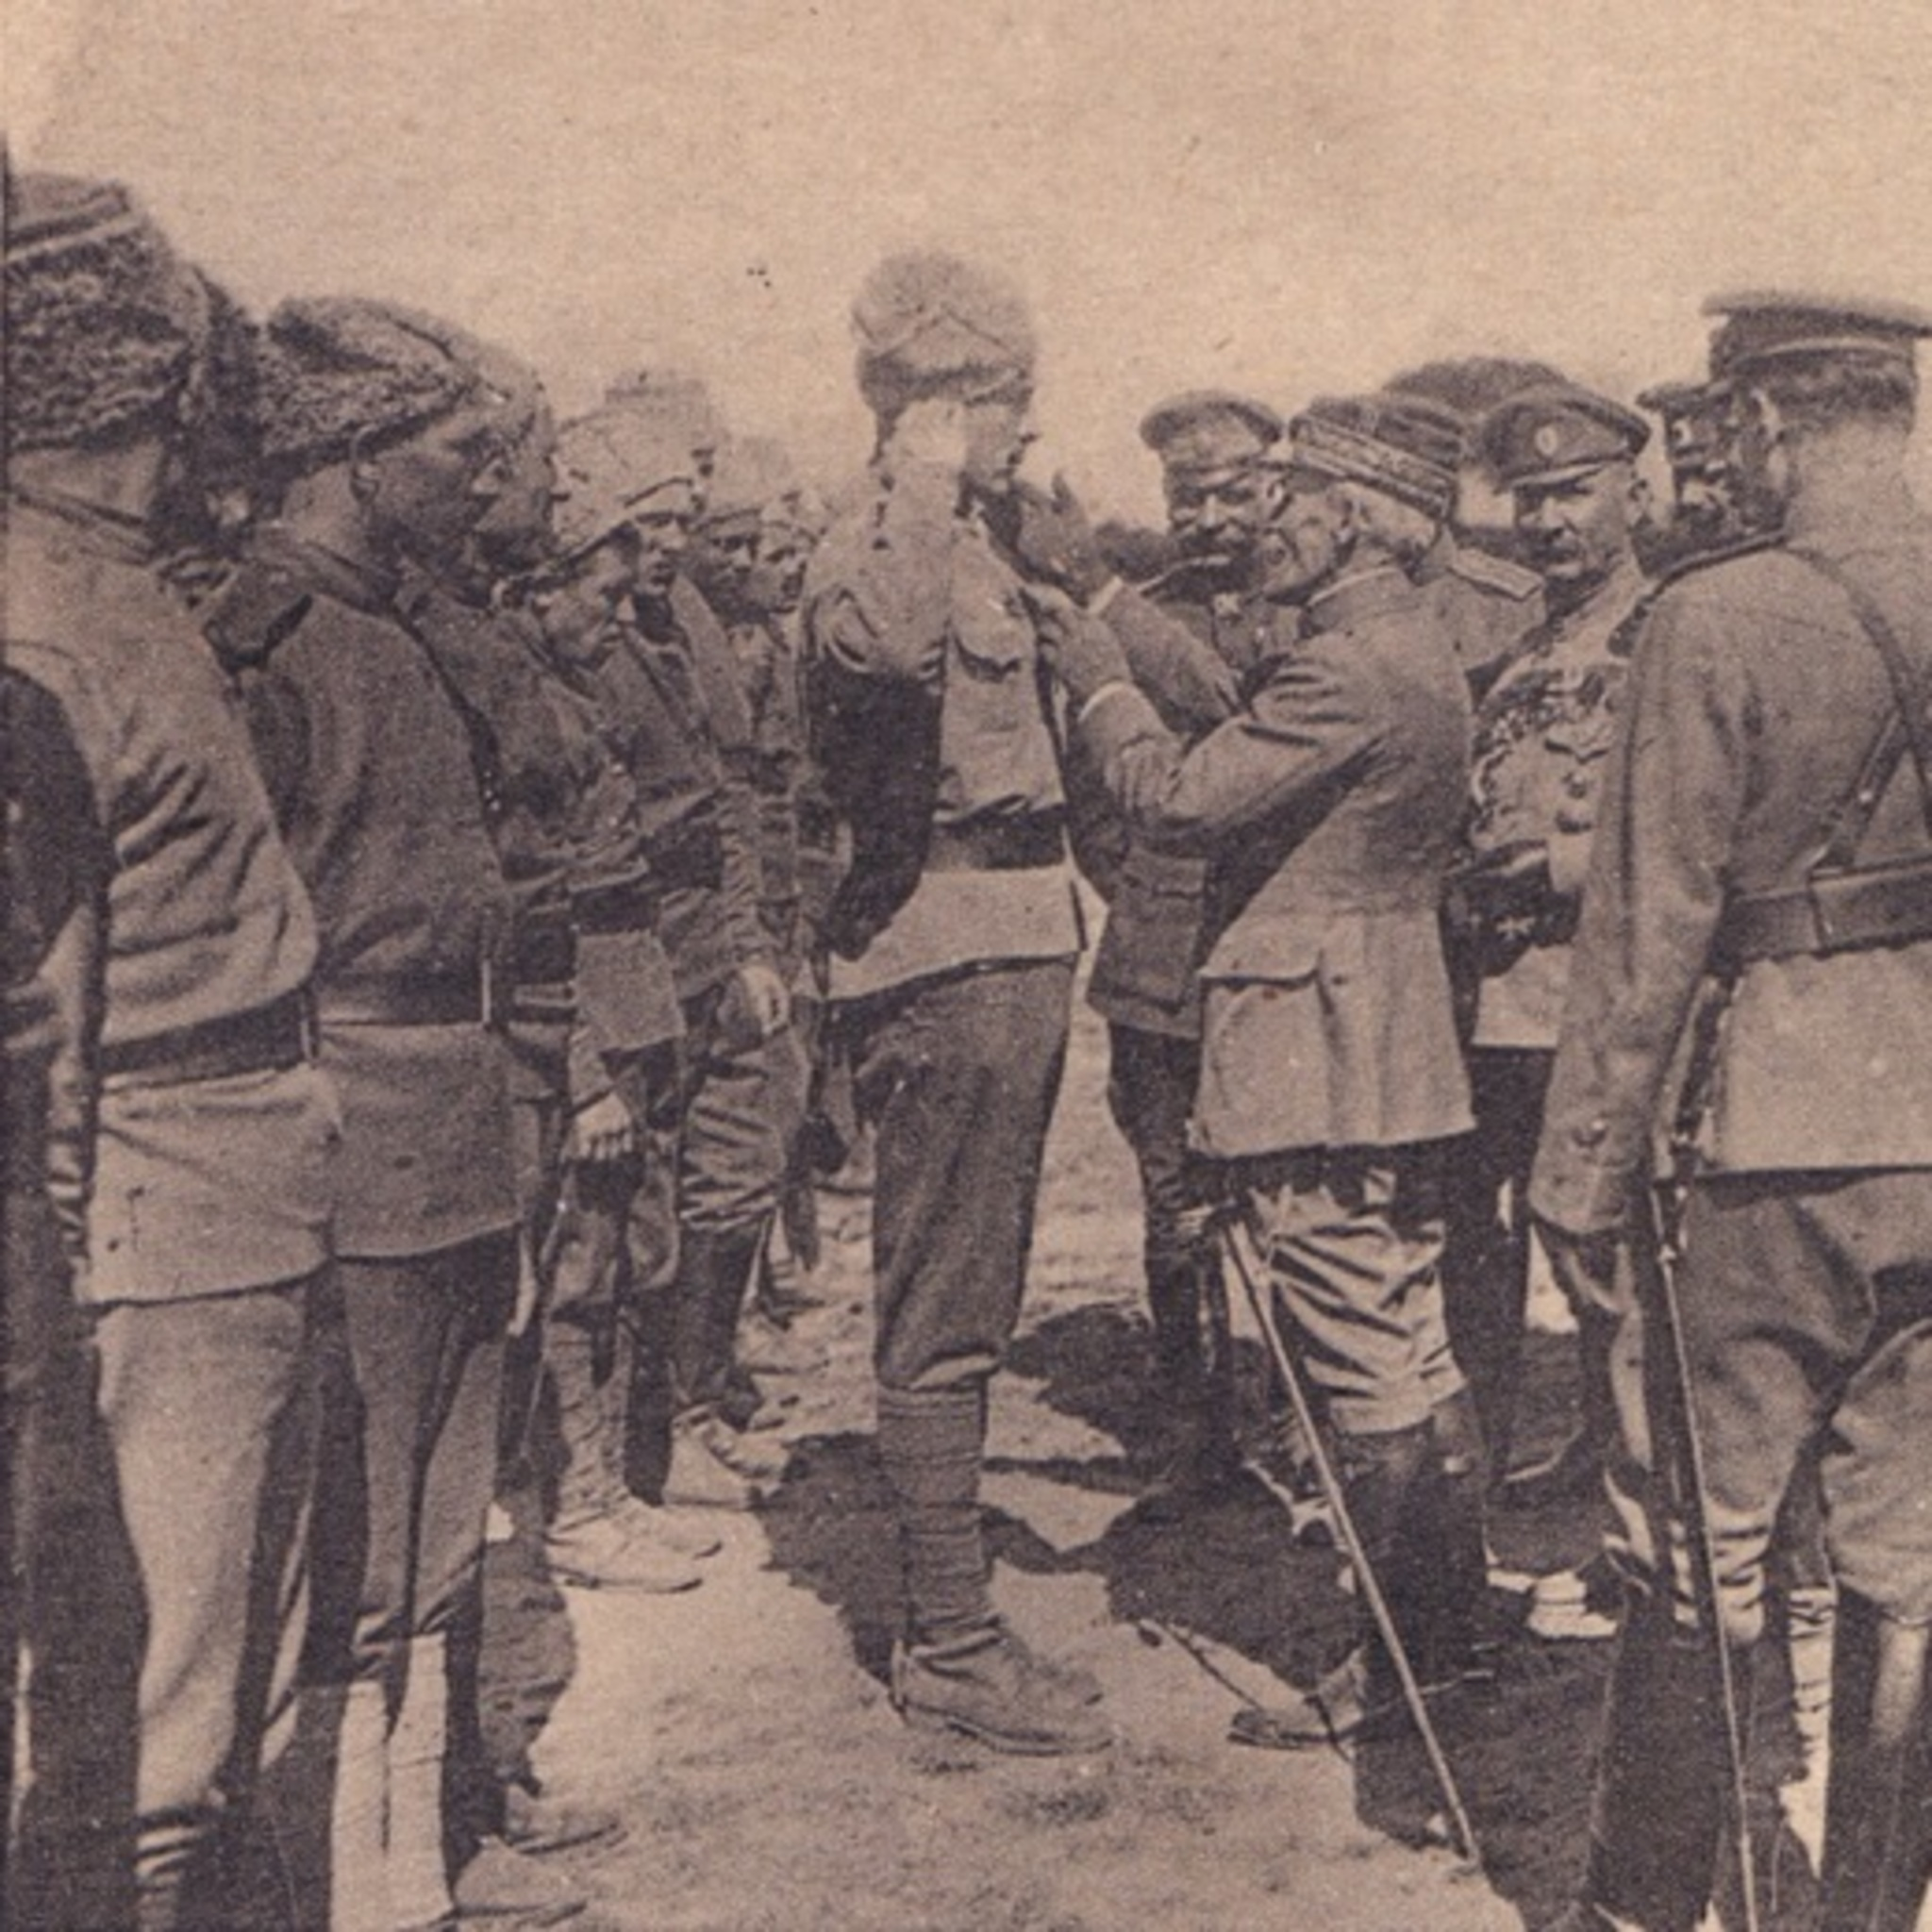 The exhibition Through the seas and oceans in France / Russian Special Brigade 1916 – 1918